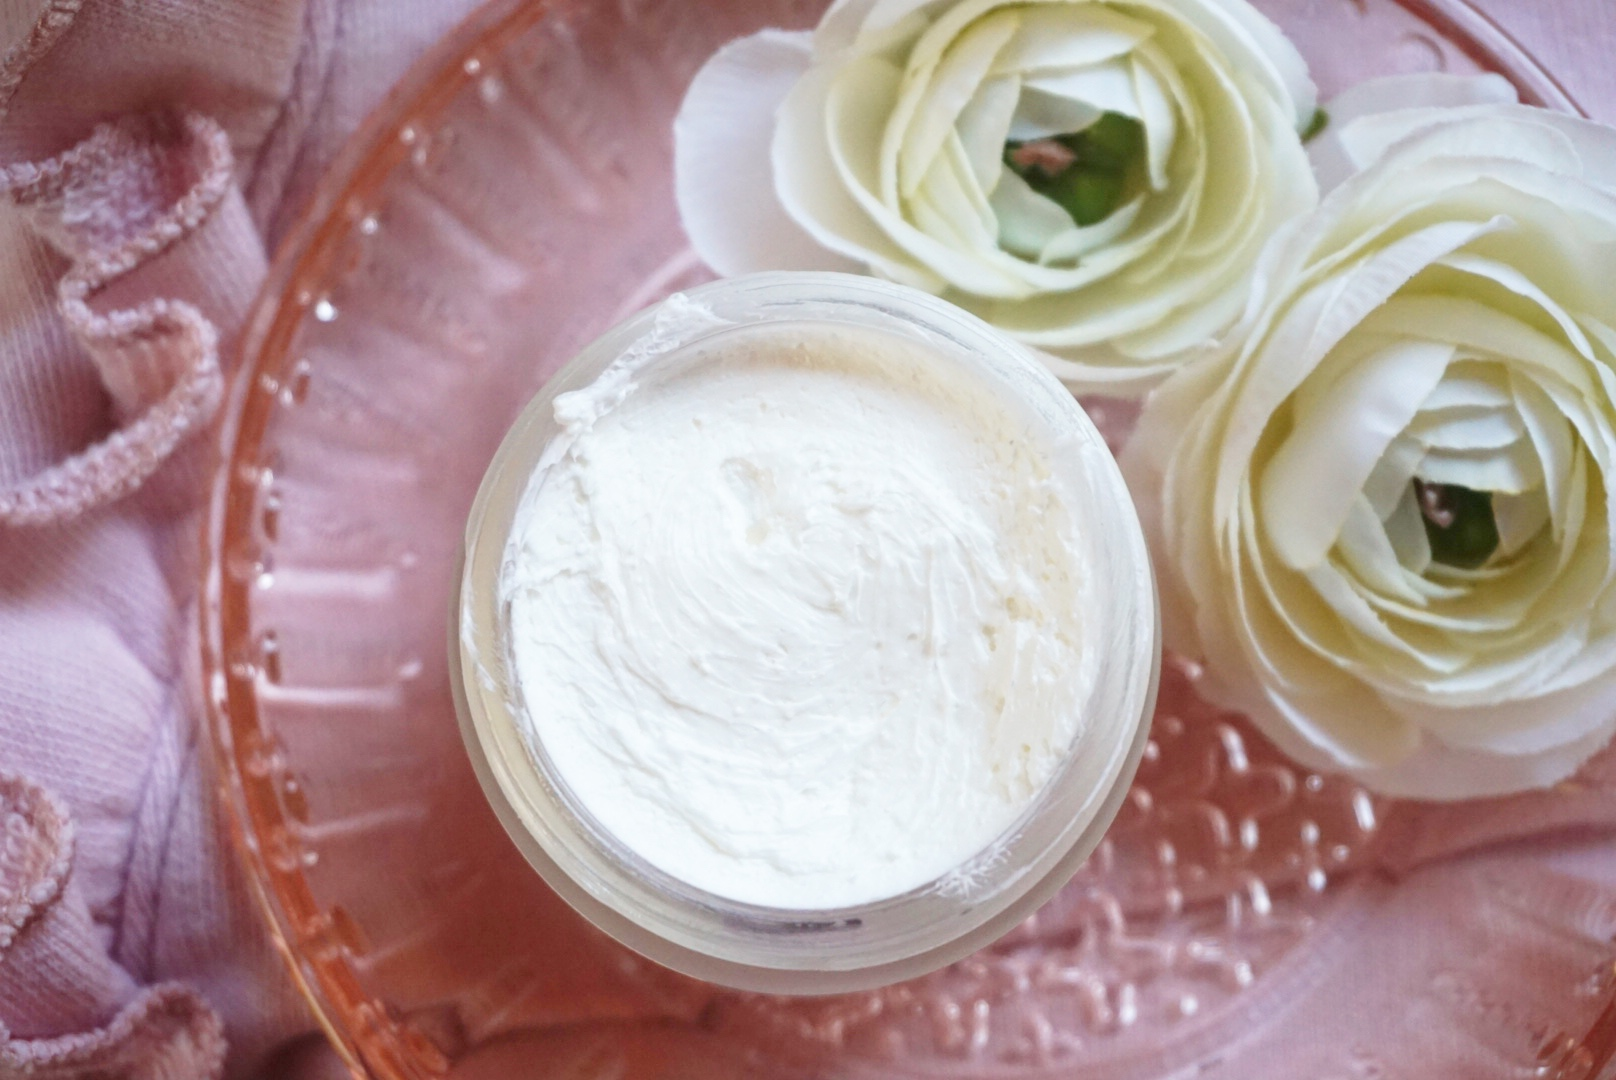 Botanical Face Butter From Sweet Life Spa